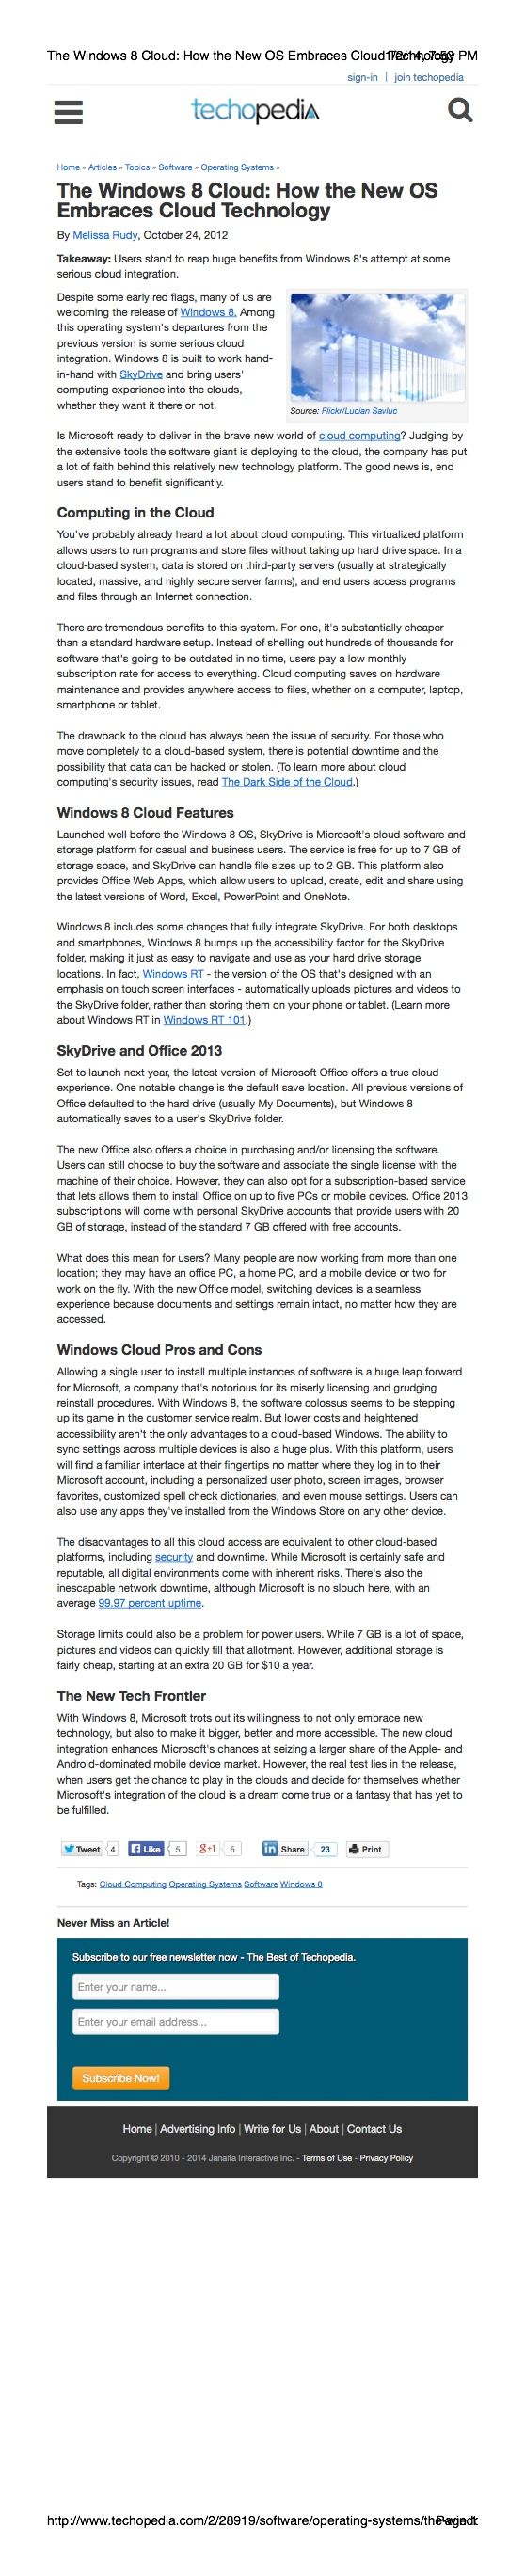 Windows 8/Cloud Computing Article